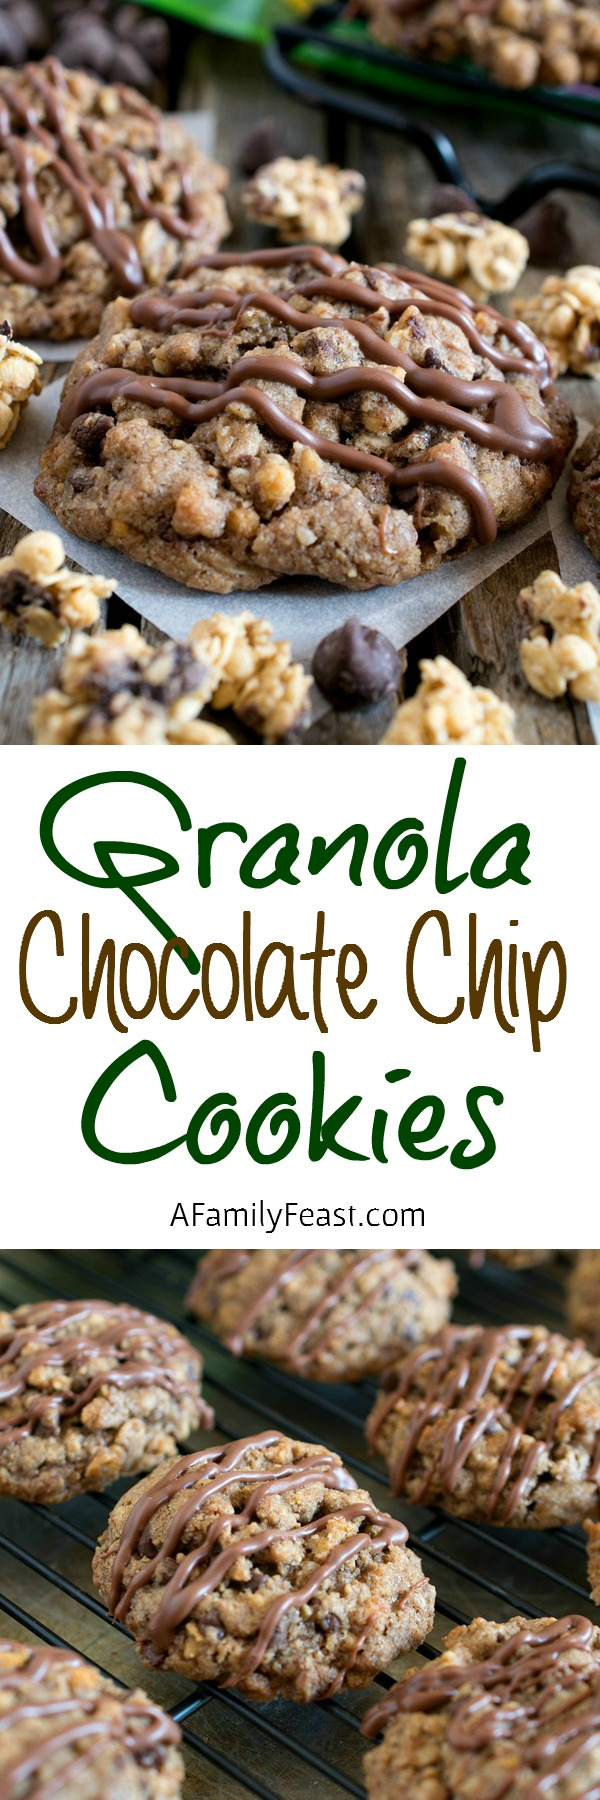 Granola Chocolate Chip Cookies - Cookie perfection! Crispy on the outside, chewy on the inside and stuffed with chocolate chips throughout.